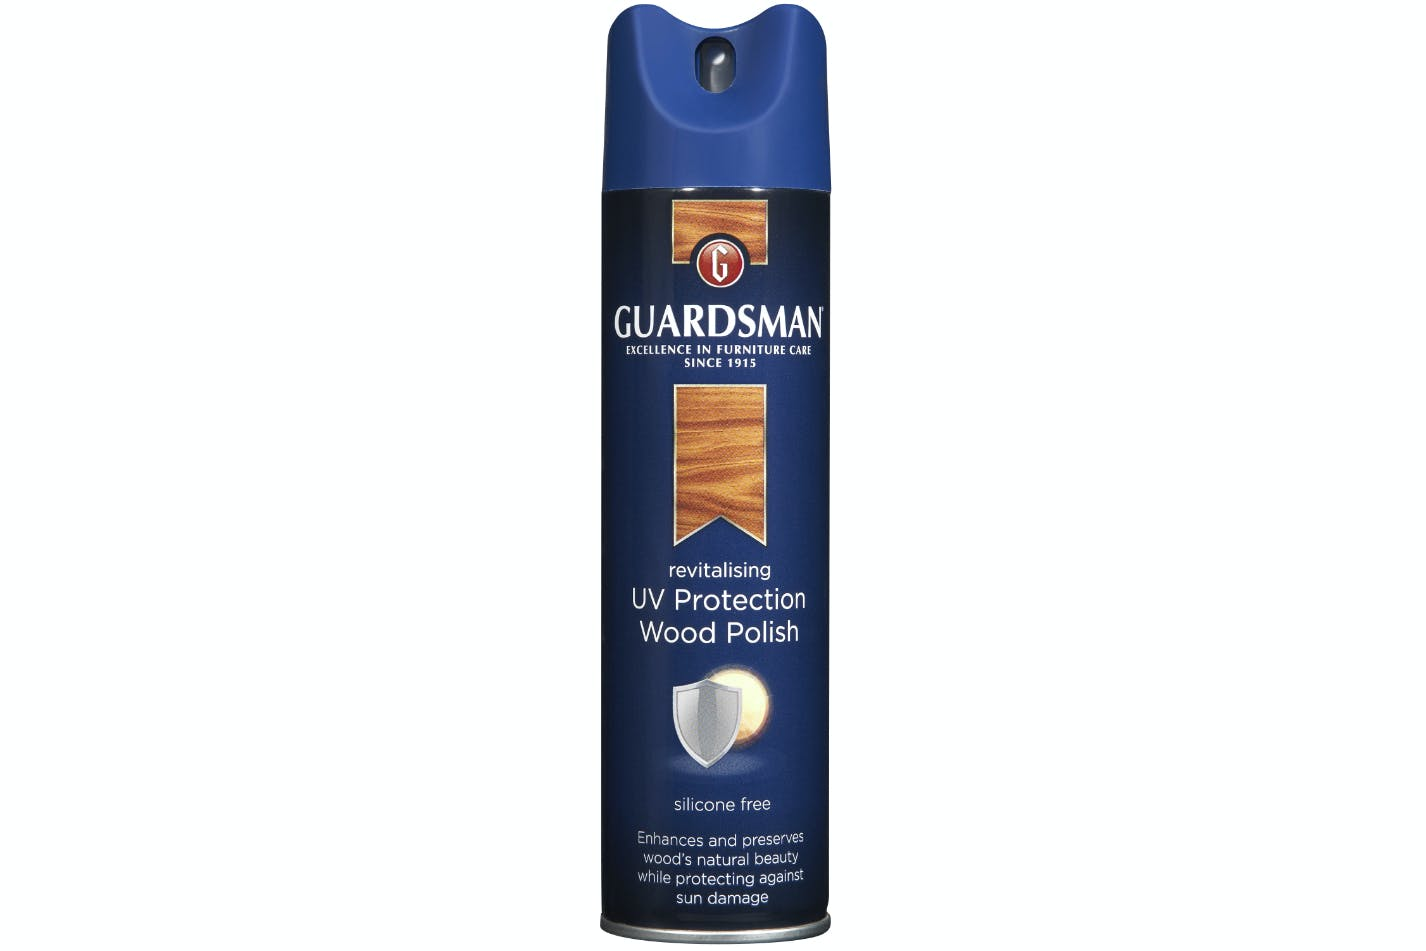 Guardsman Uv Protection Wood Polish Ireland